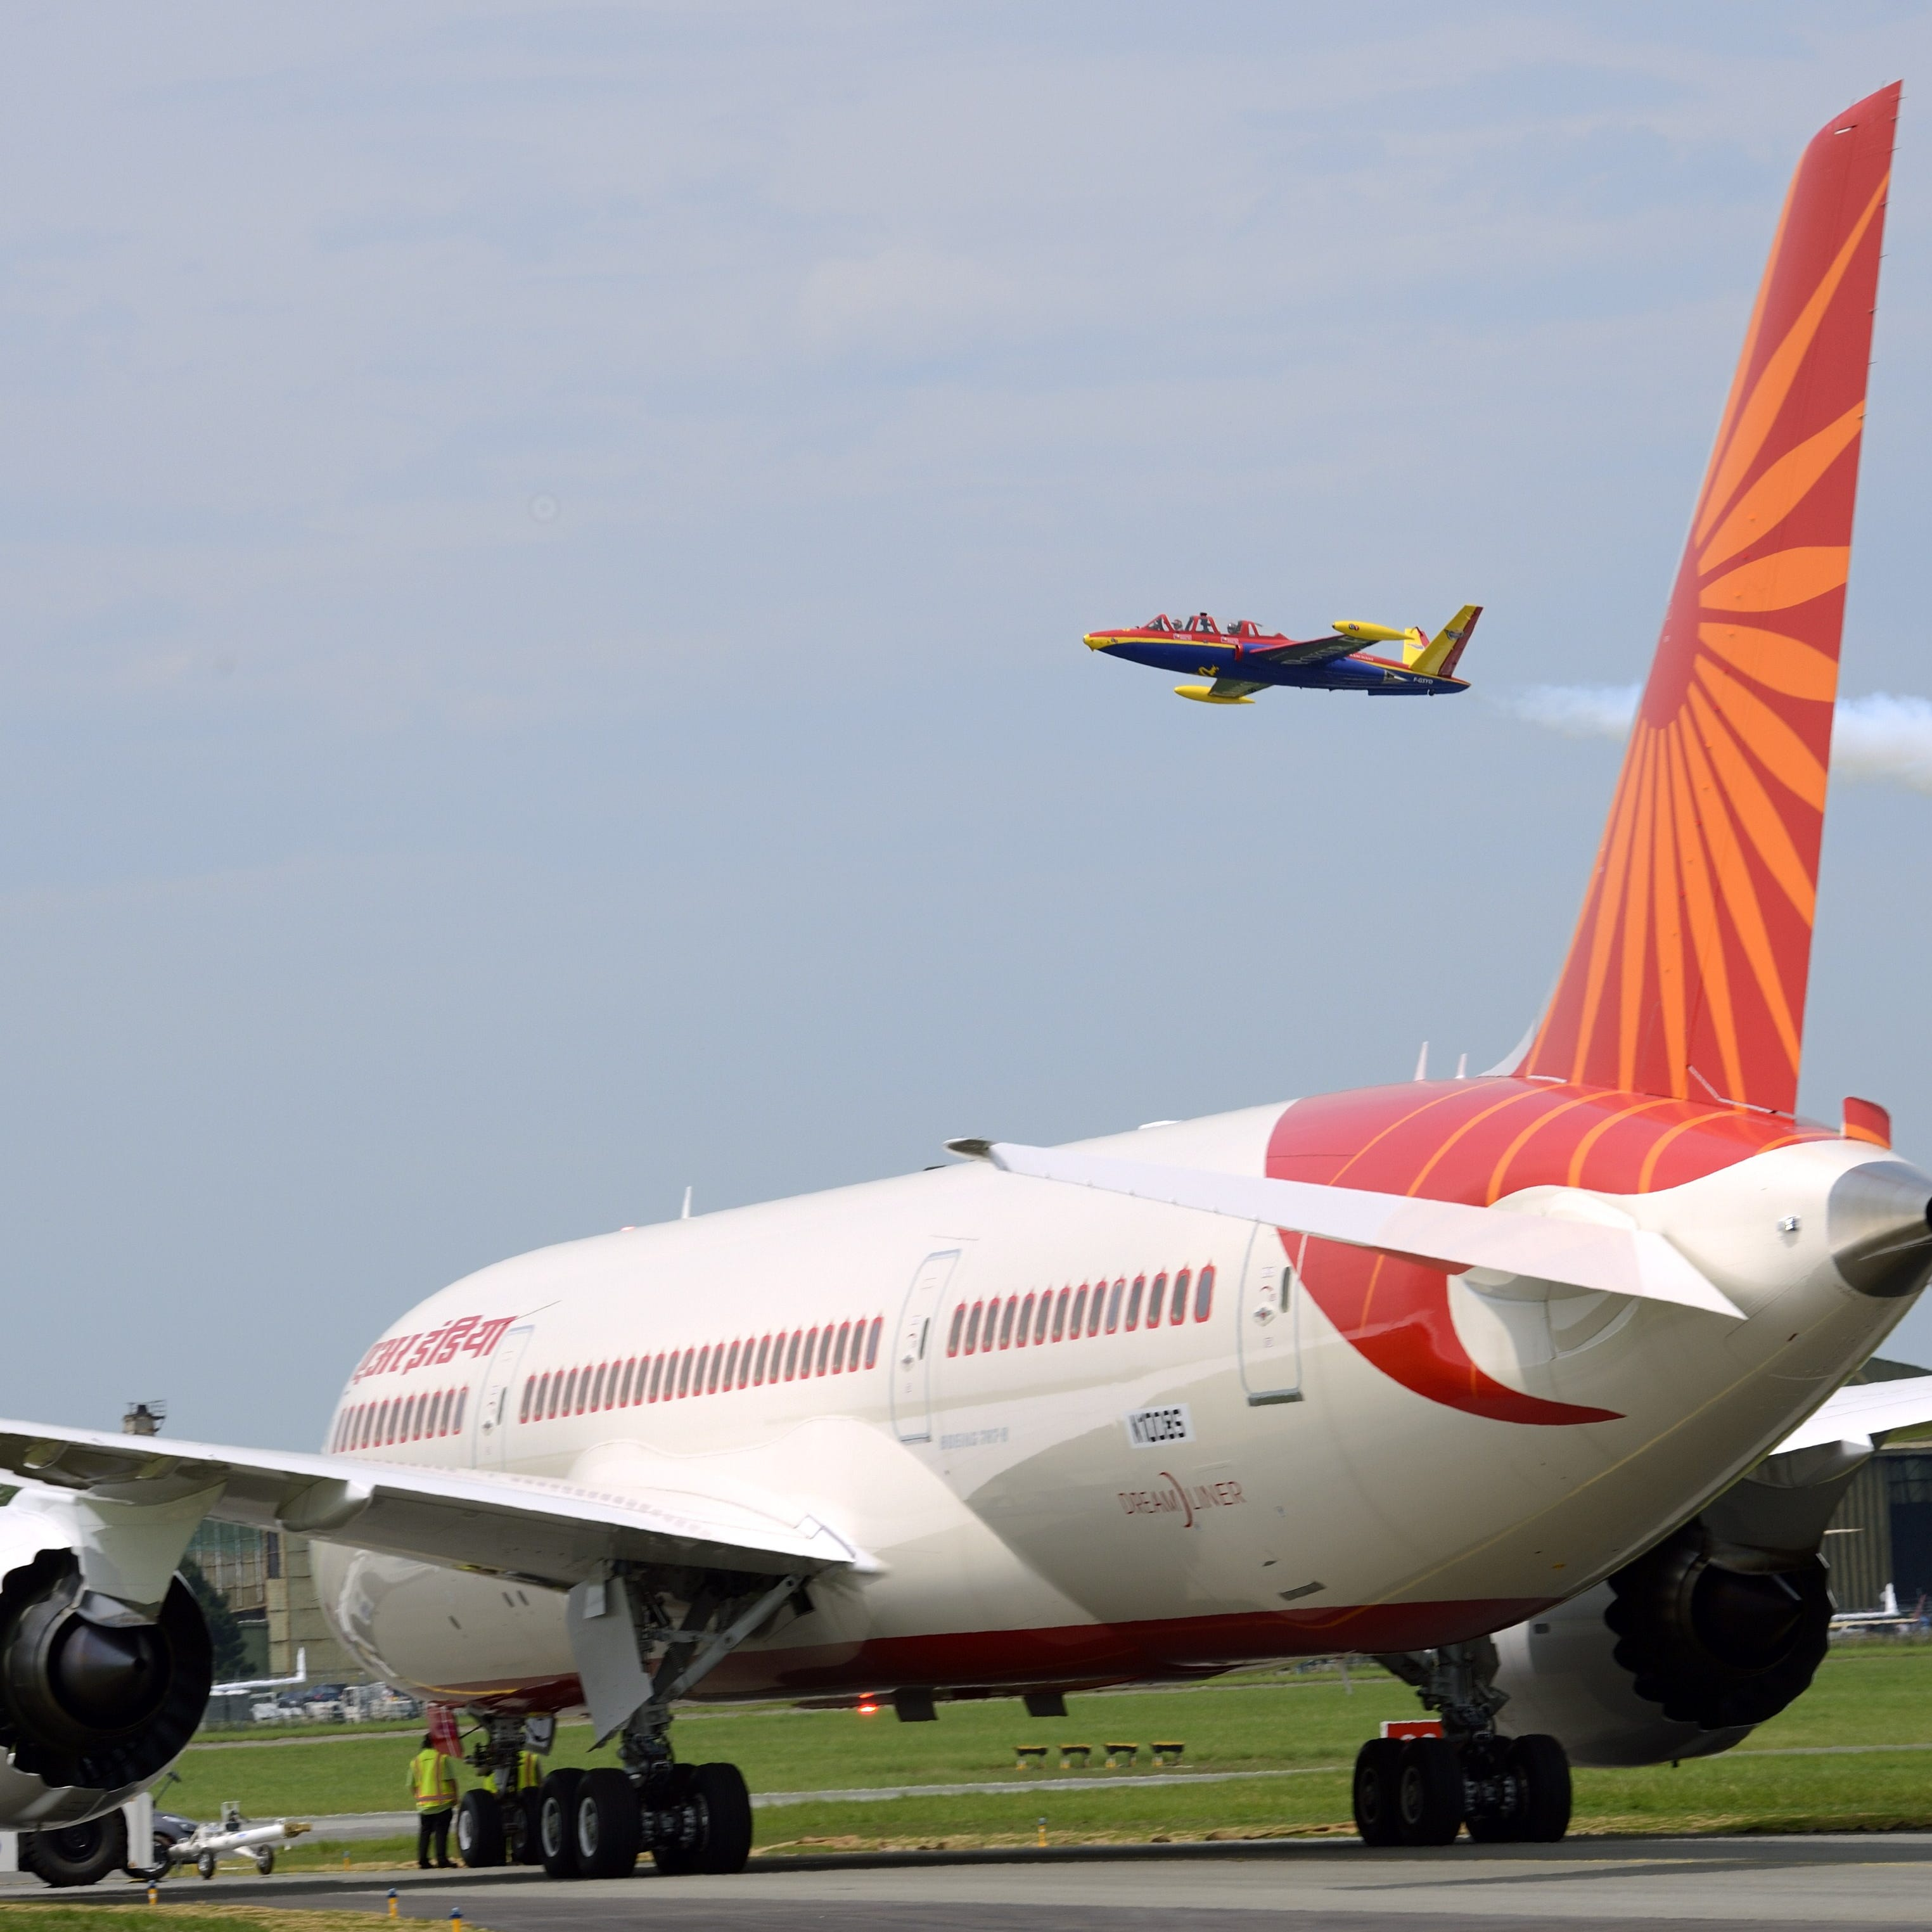 An Air India flight attendant injured her legs when she fell to the tarmac after trying to close the door on a Boeing 777.